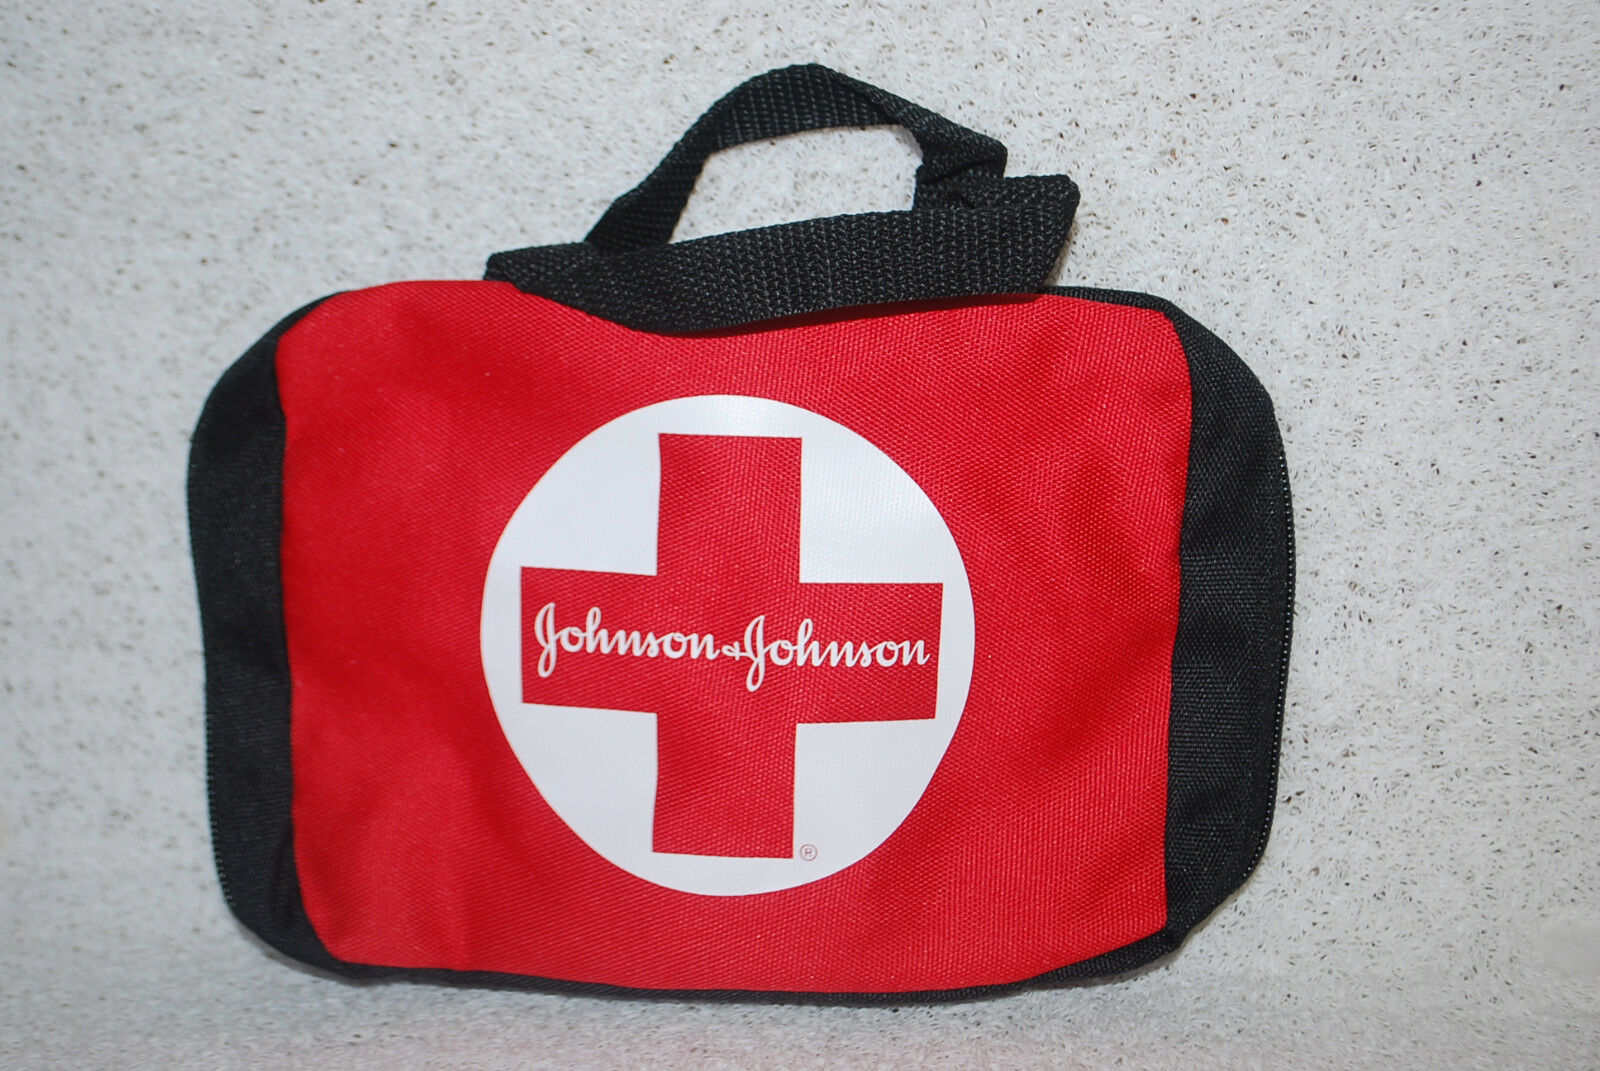 10johnson & Johnson Build Your Own First Aid Kit Empty